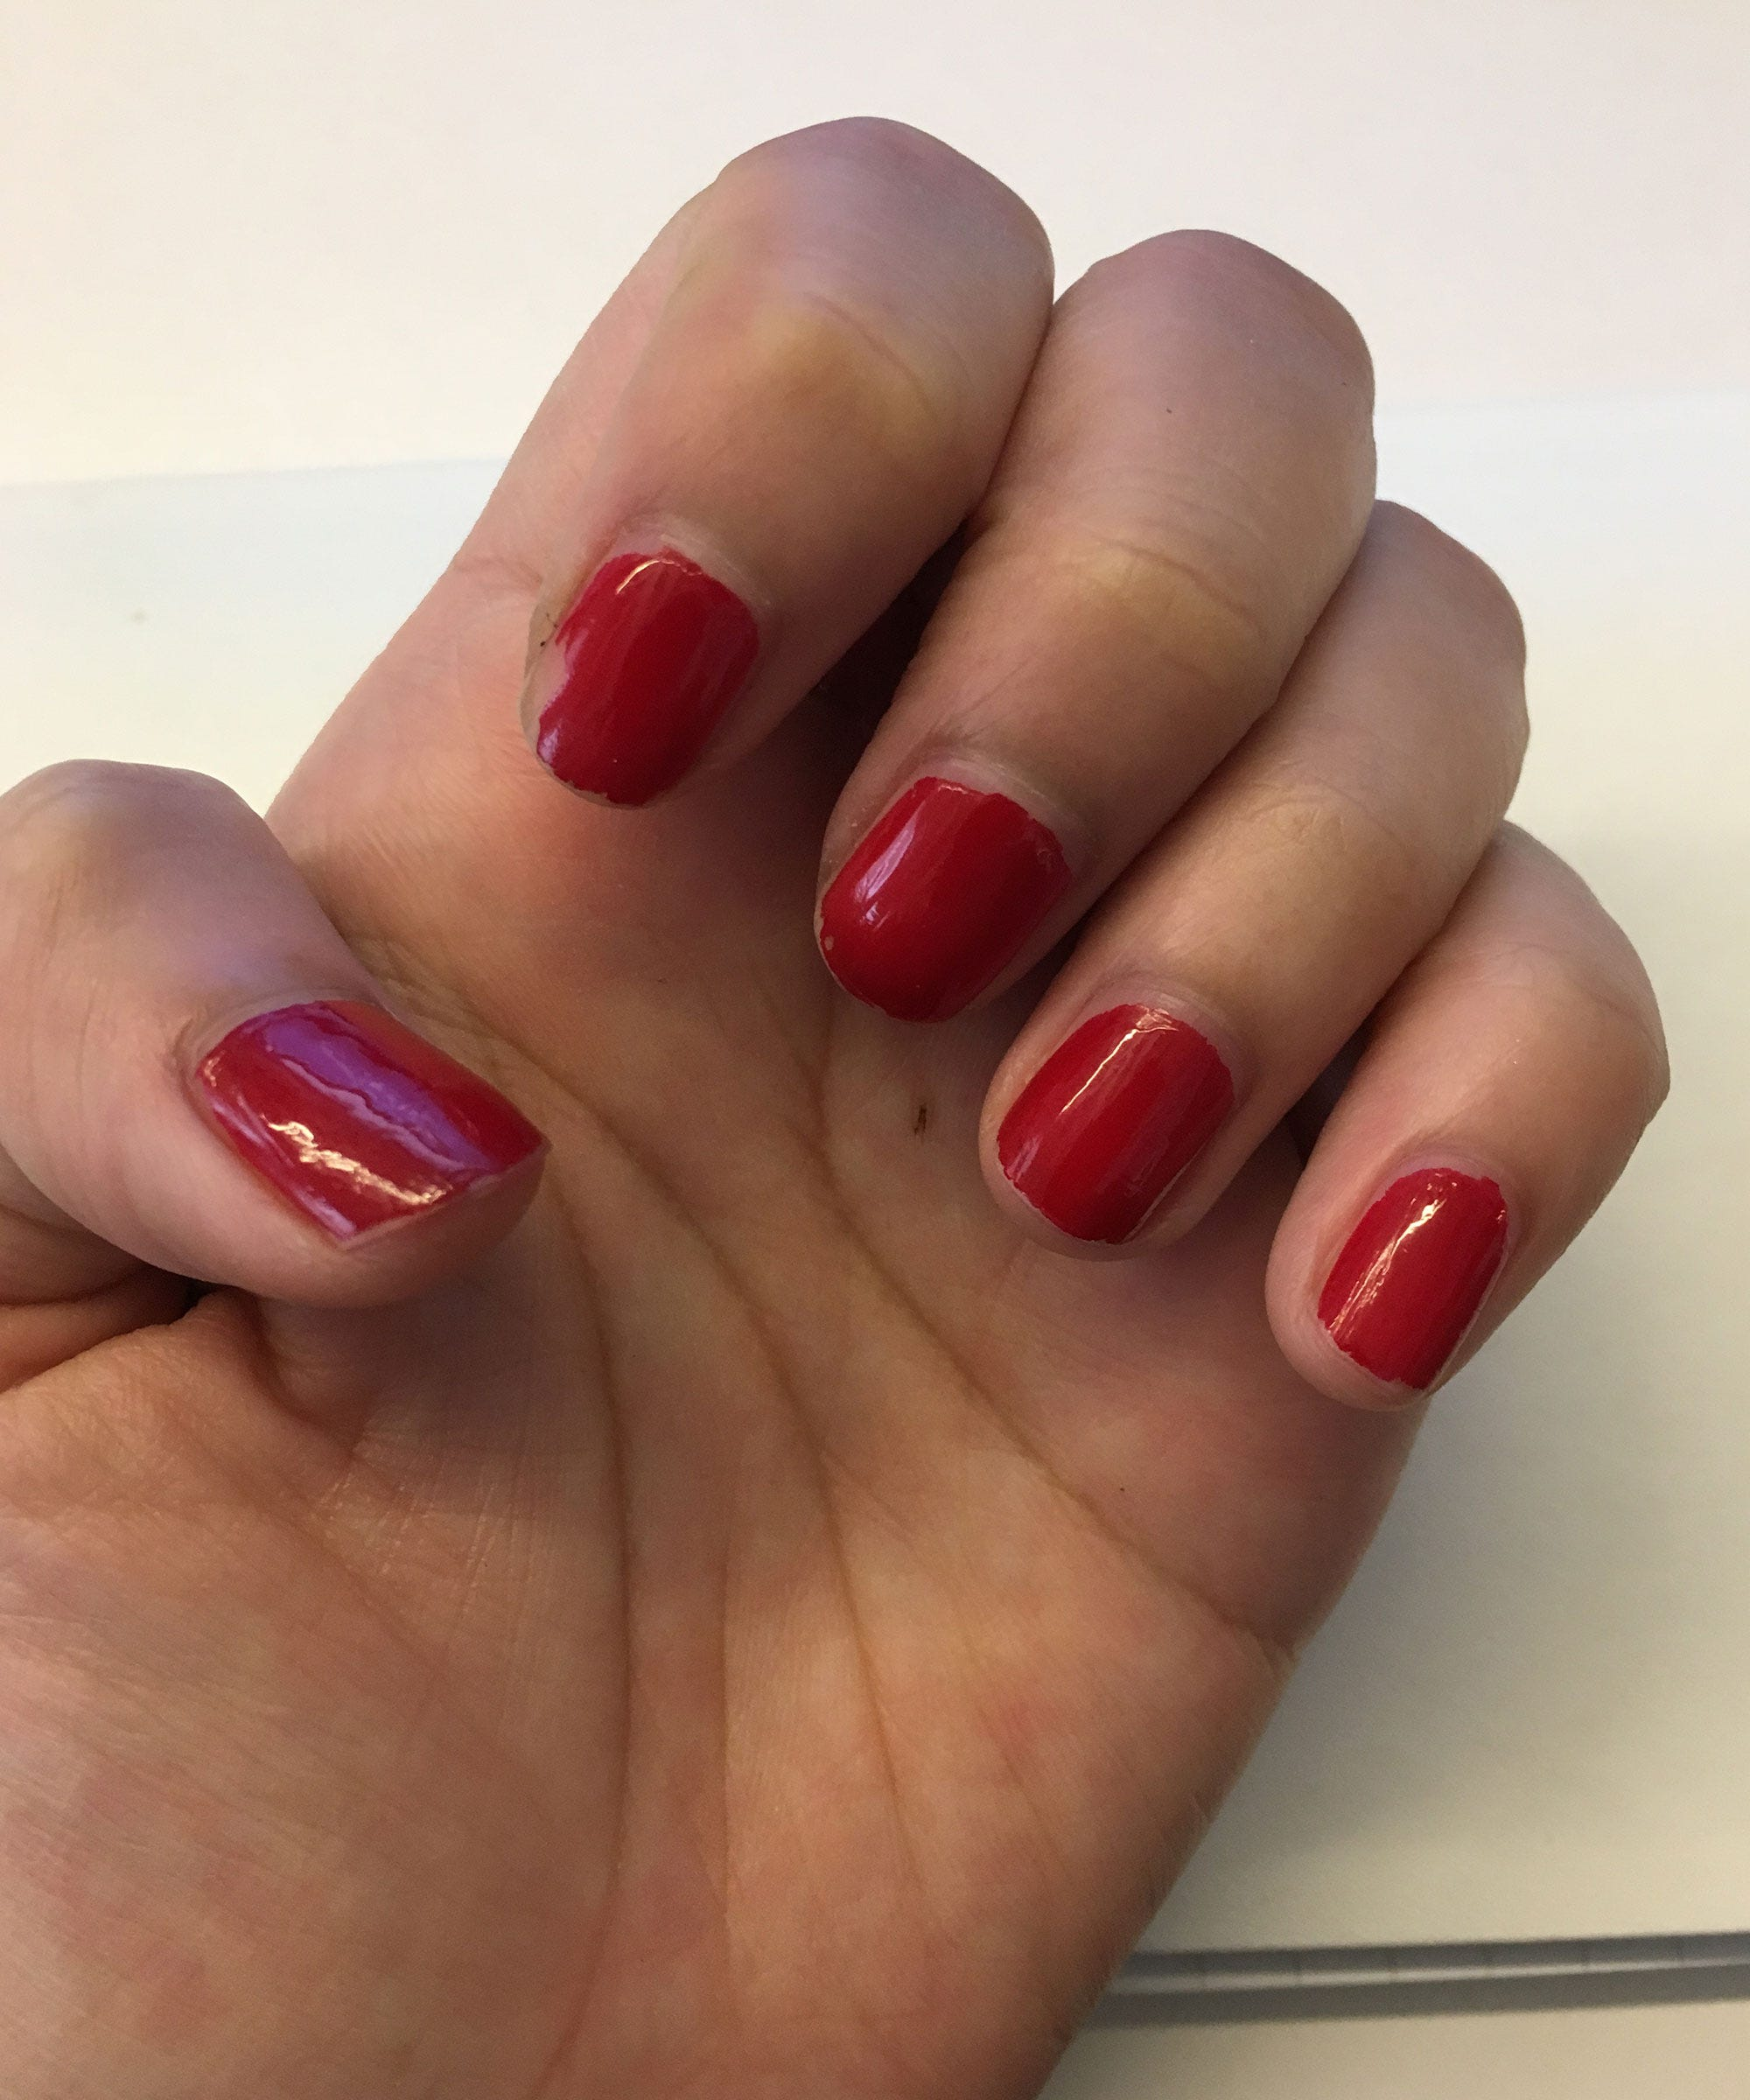 Best gel nail polish no chip nail colors nvjuhfo Image collections